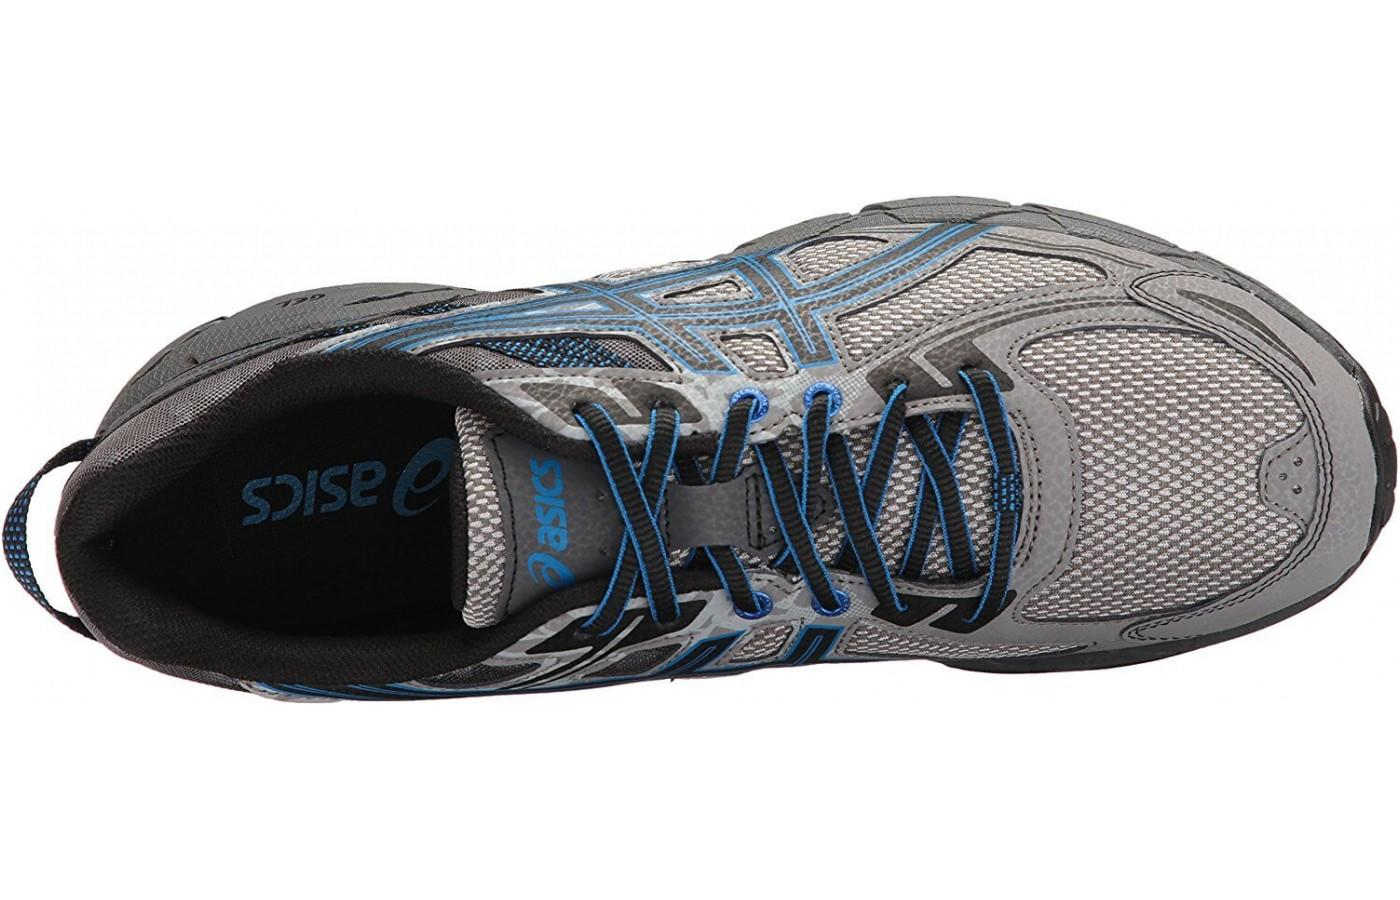 Asics Gel Venture 6 breathable upper